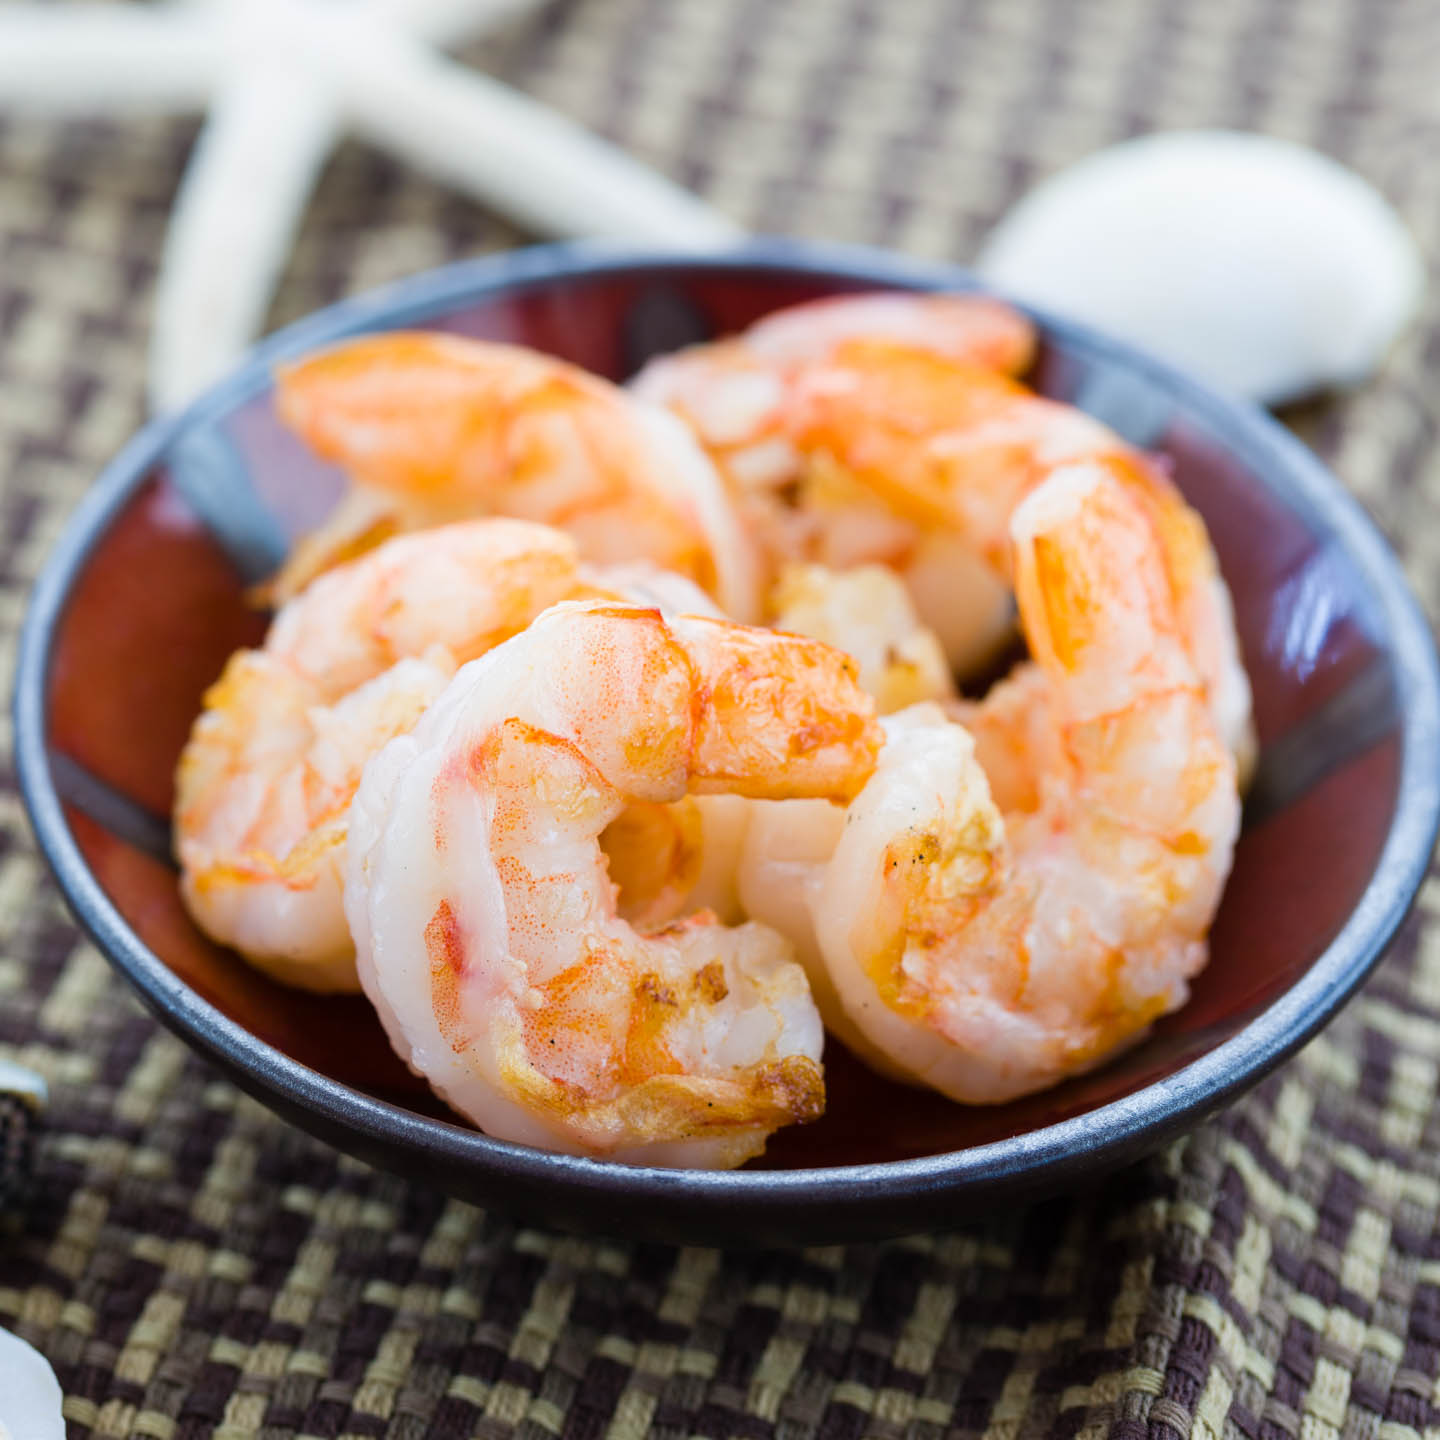 Shrimp ready for entree